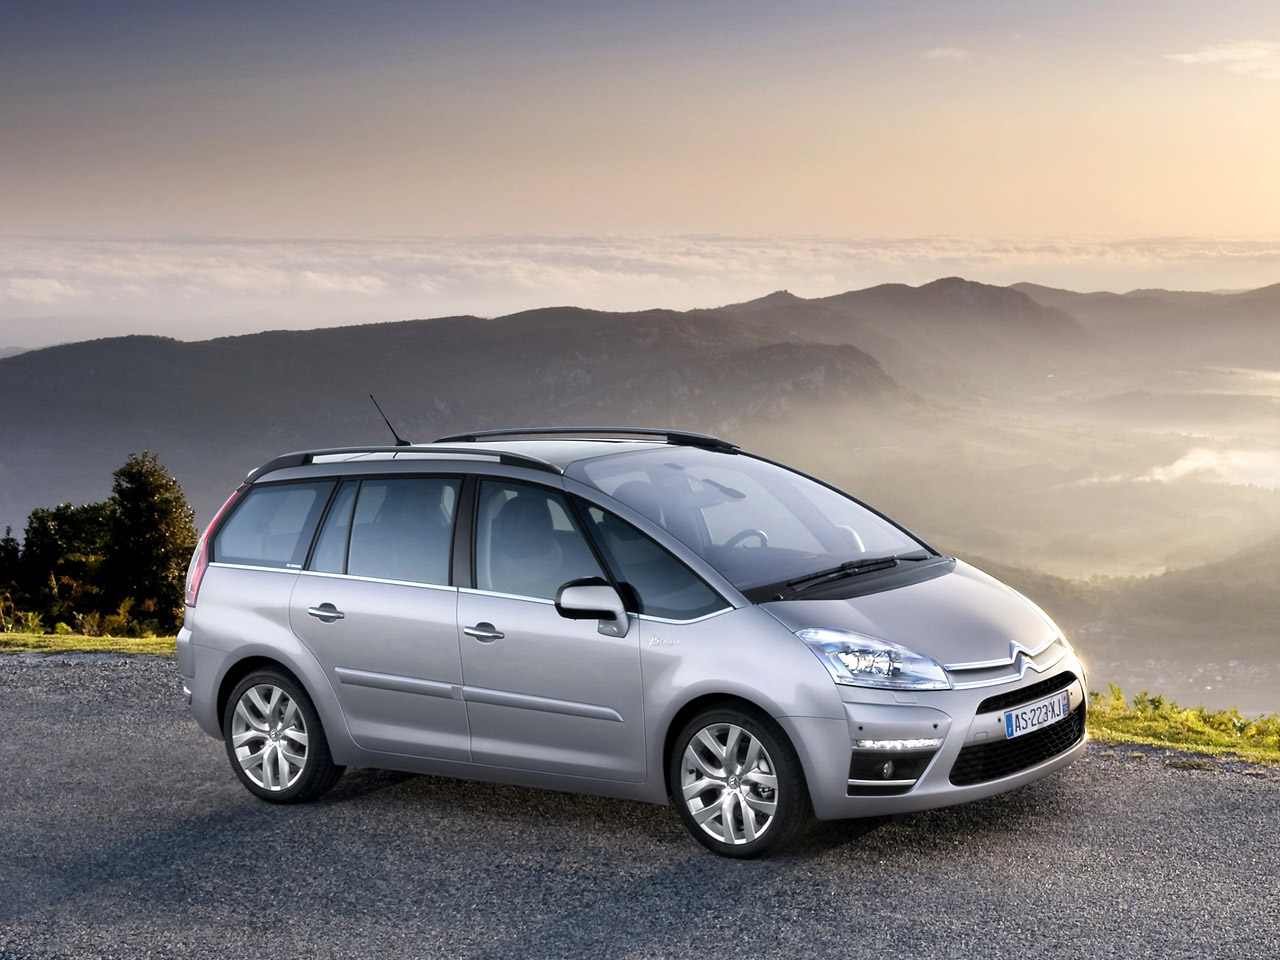 citroen c4 grand picasso 2010 citroen c4 grand picasso 2010 photo 11 car in pictures car